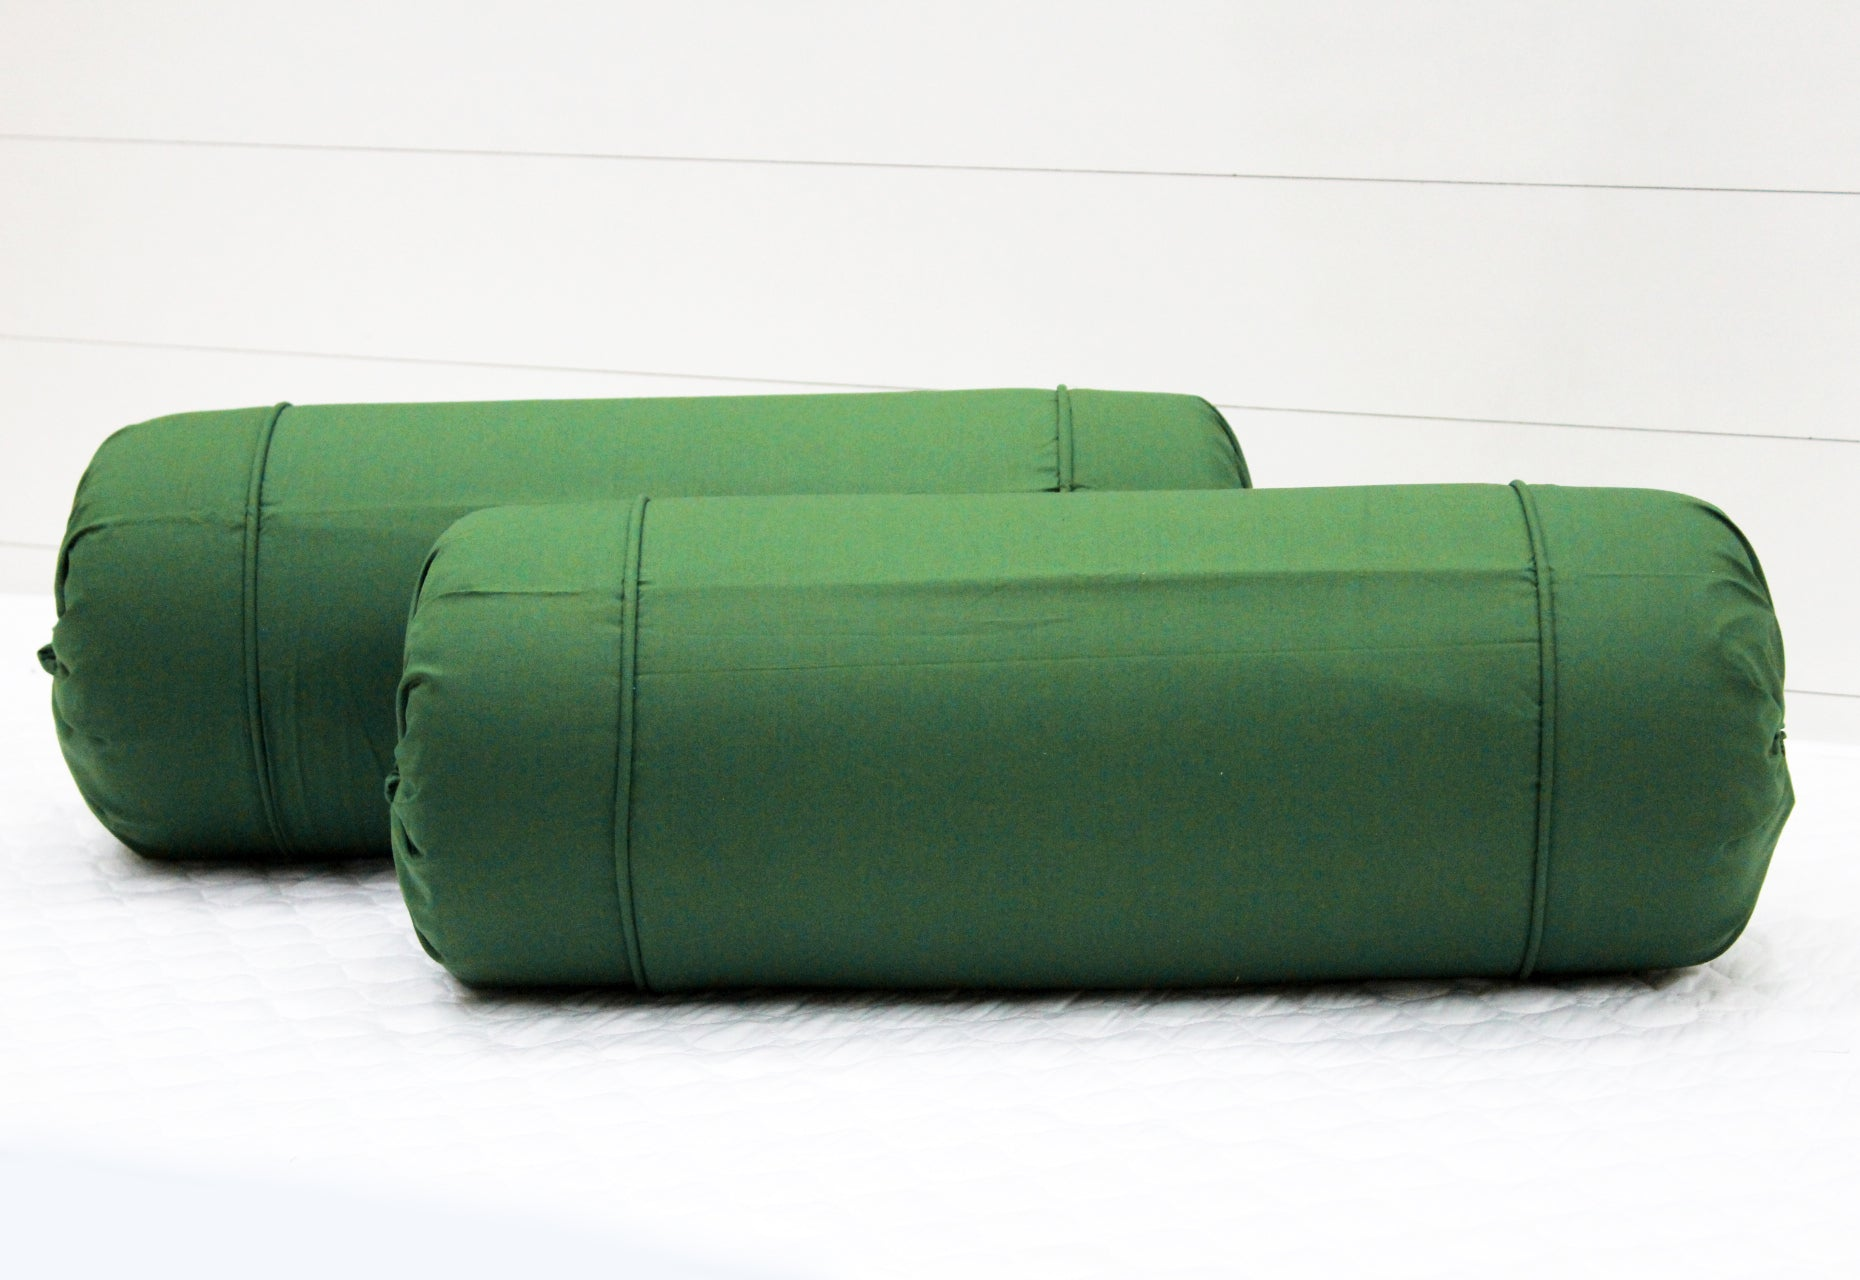 AURAVE Excel Cotton 2 Pieces Plain Bolster Cover Set - 15 X 30 inches, Bottle Green